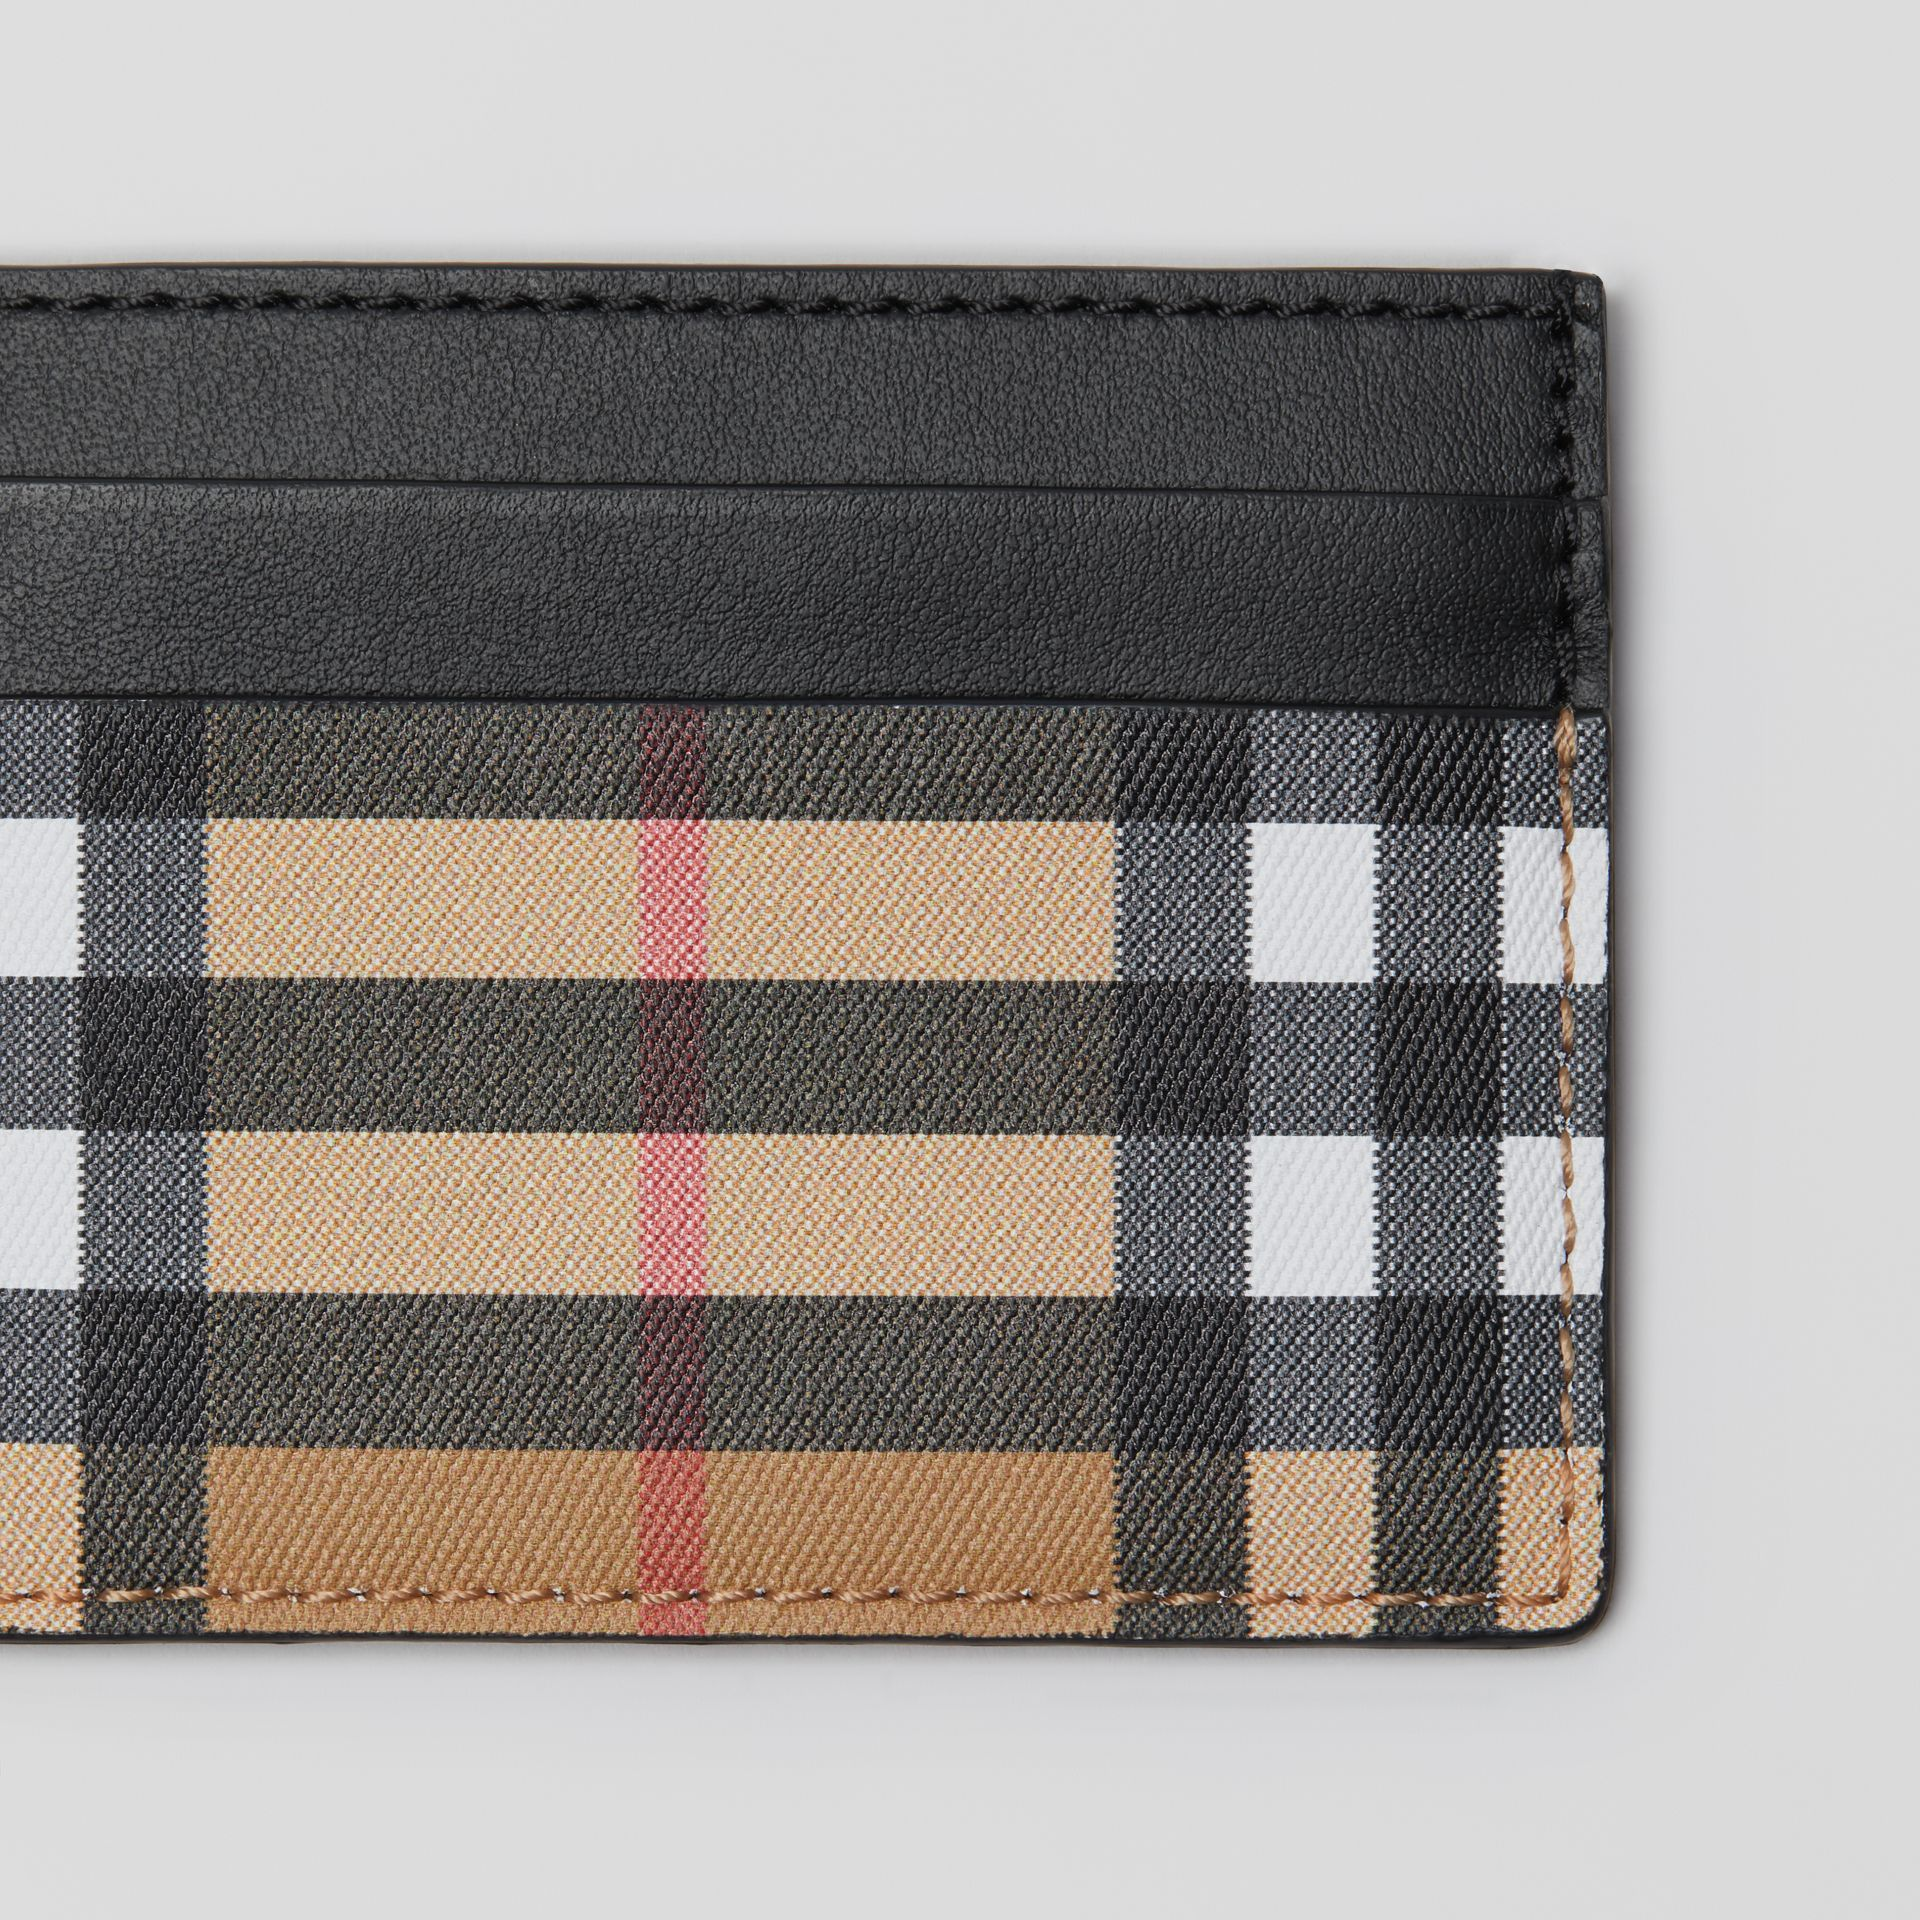 Vintage Check Leather Card Case in Black - Women | Burberry Canada - gallery image 1